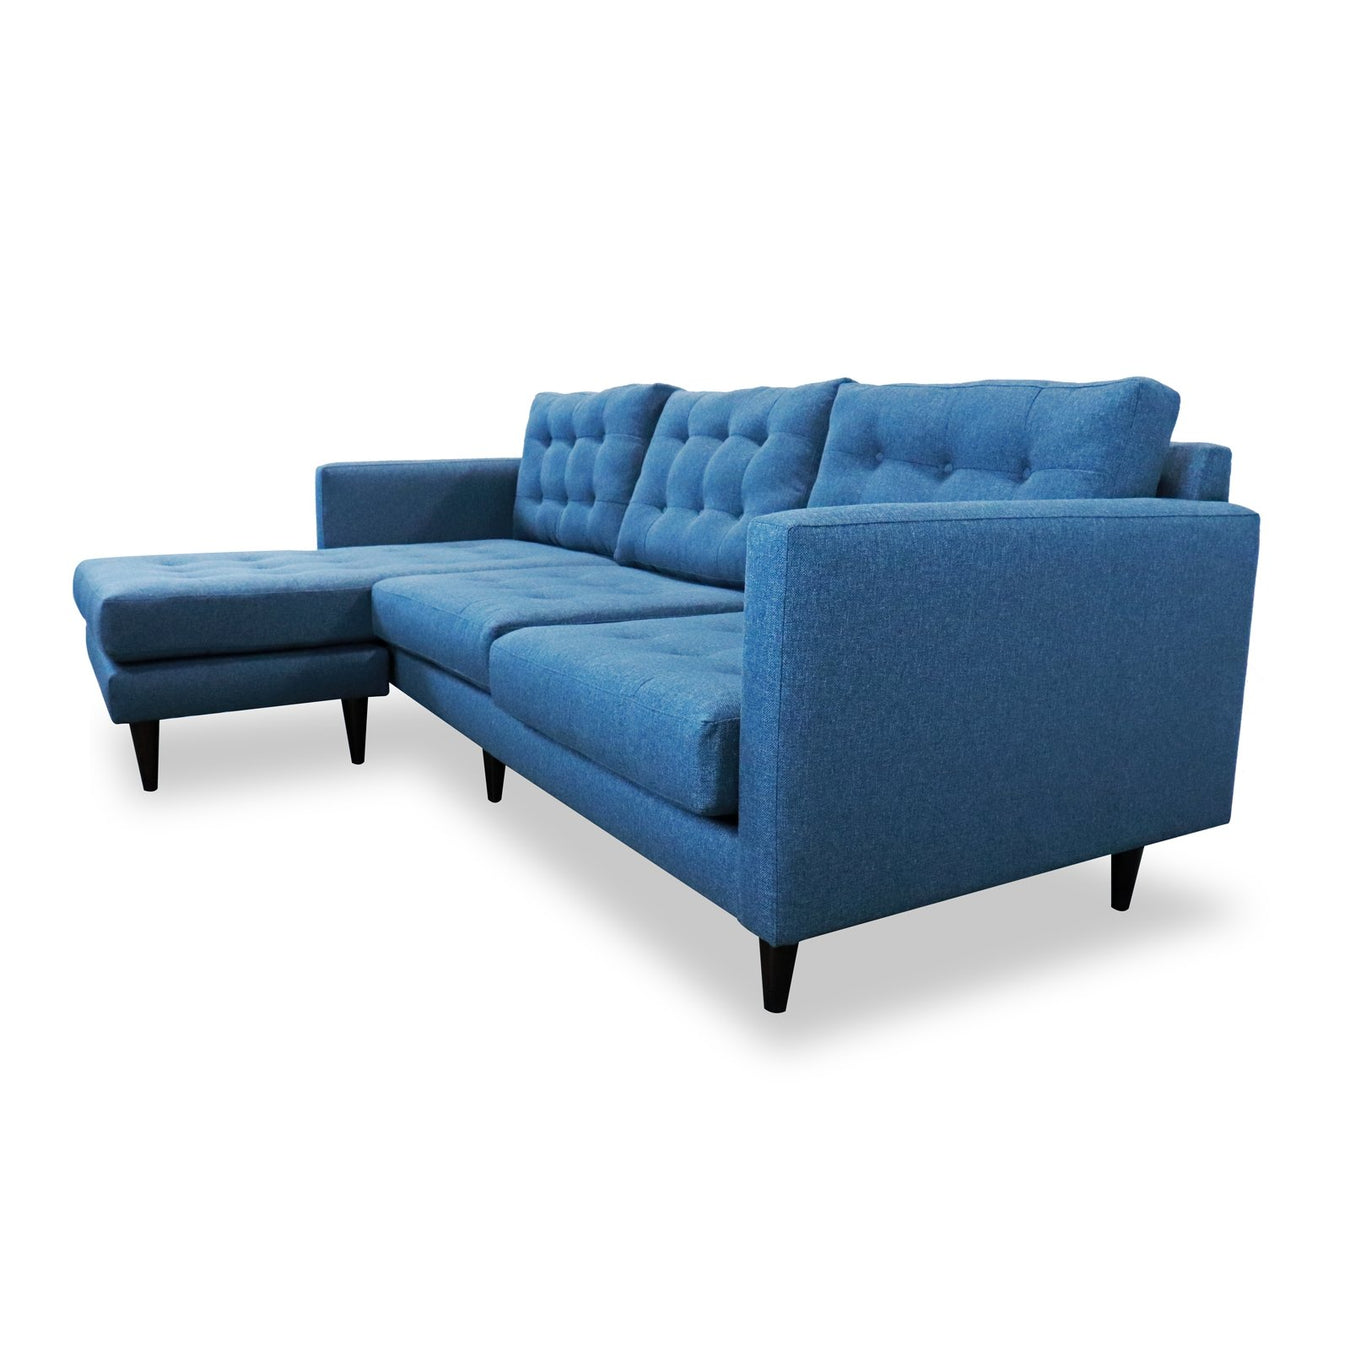 Chaise | Austin's Couch Potatoes Furniture